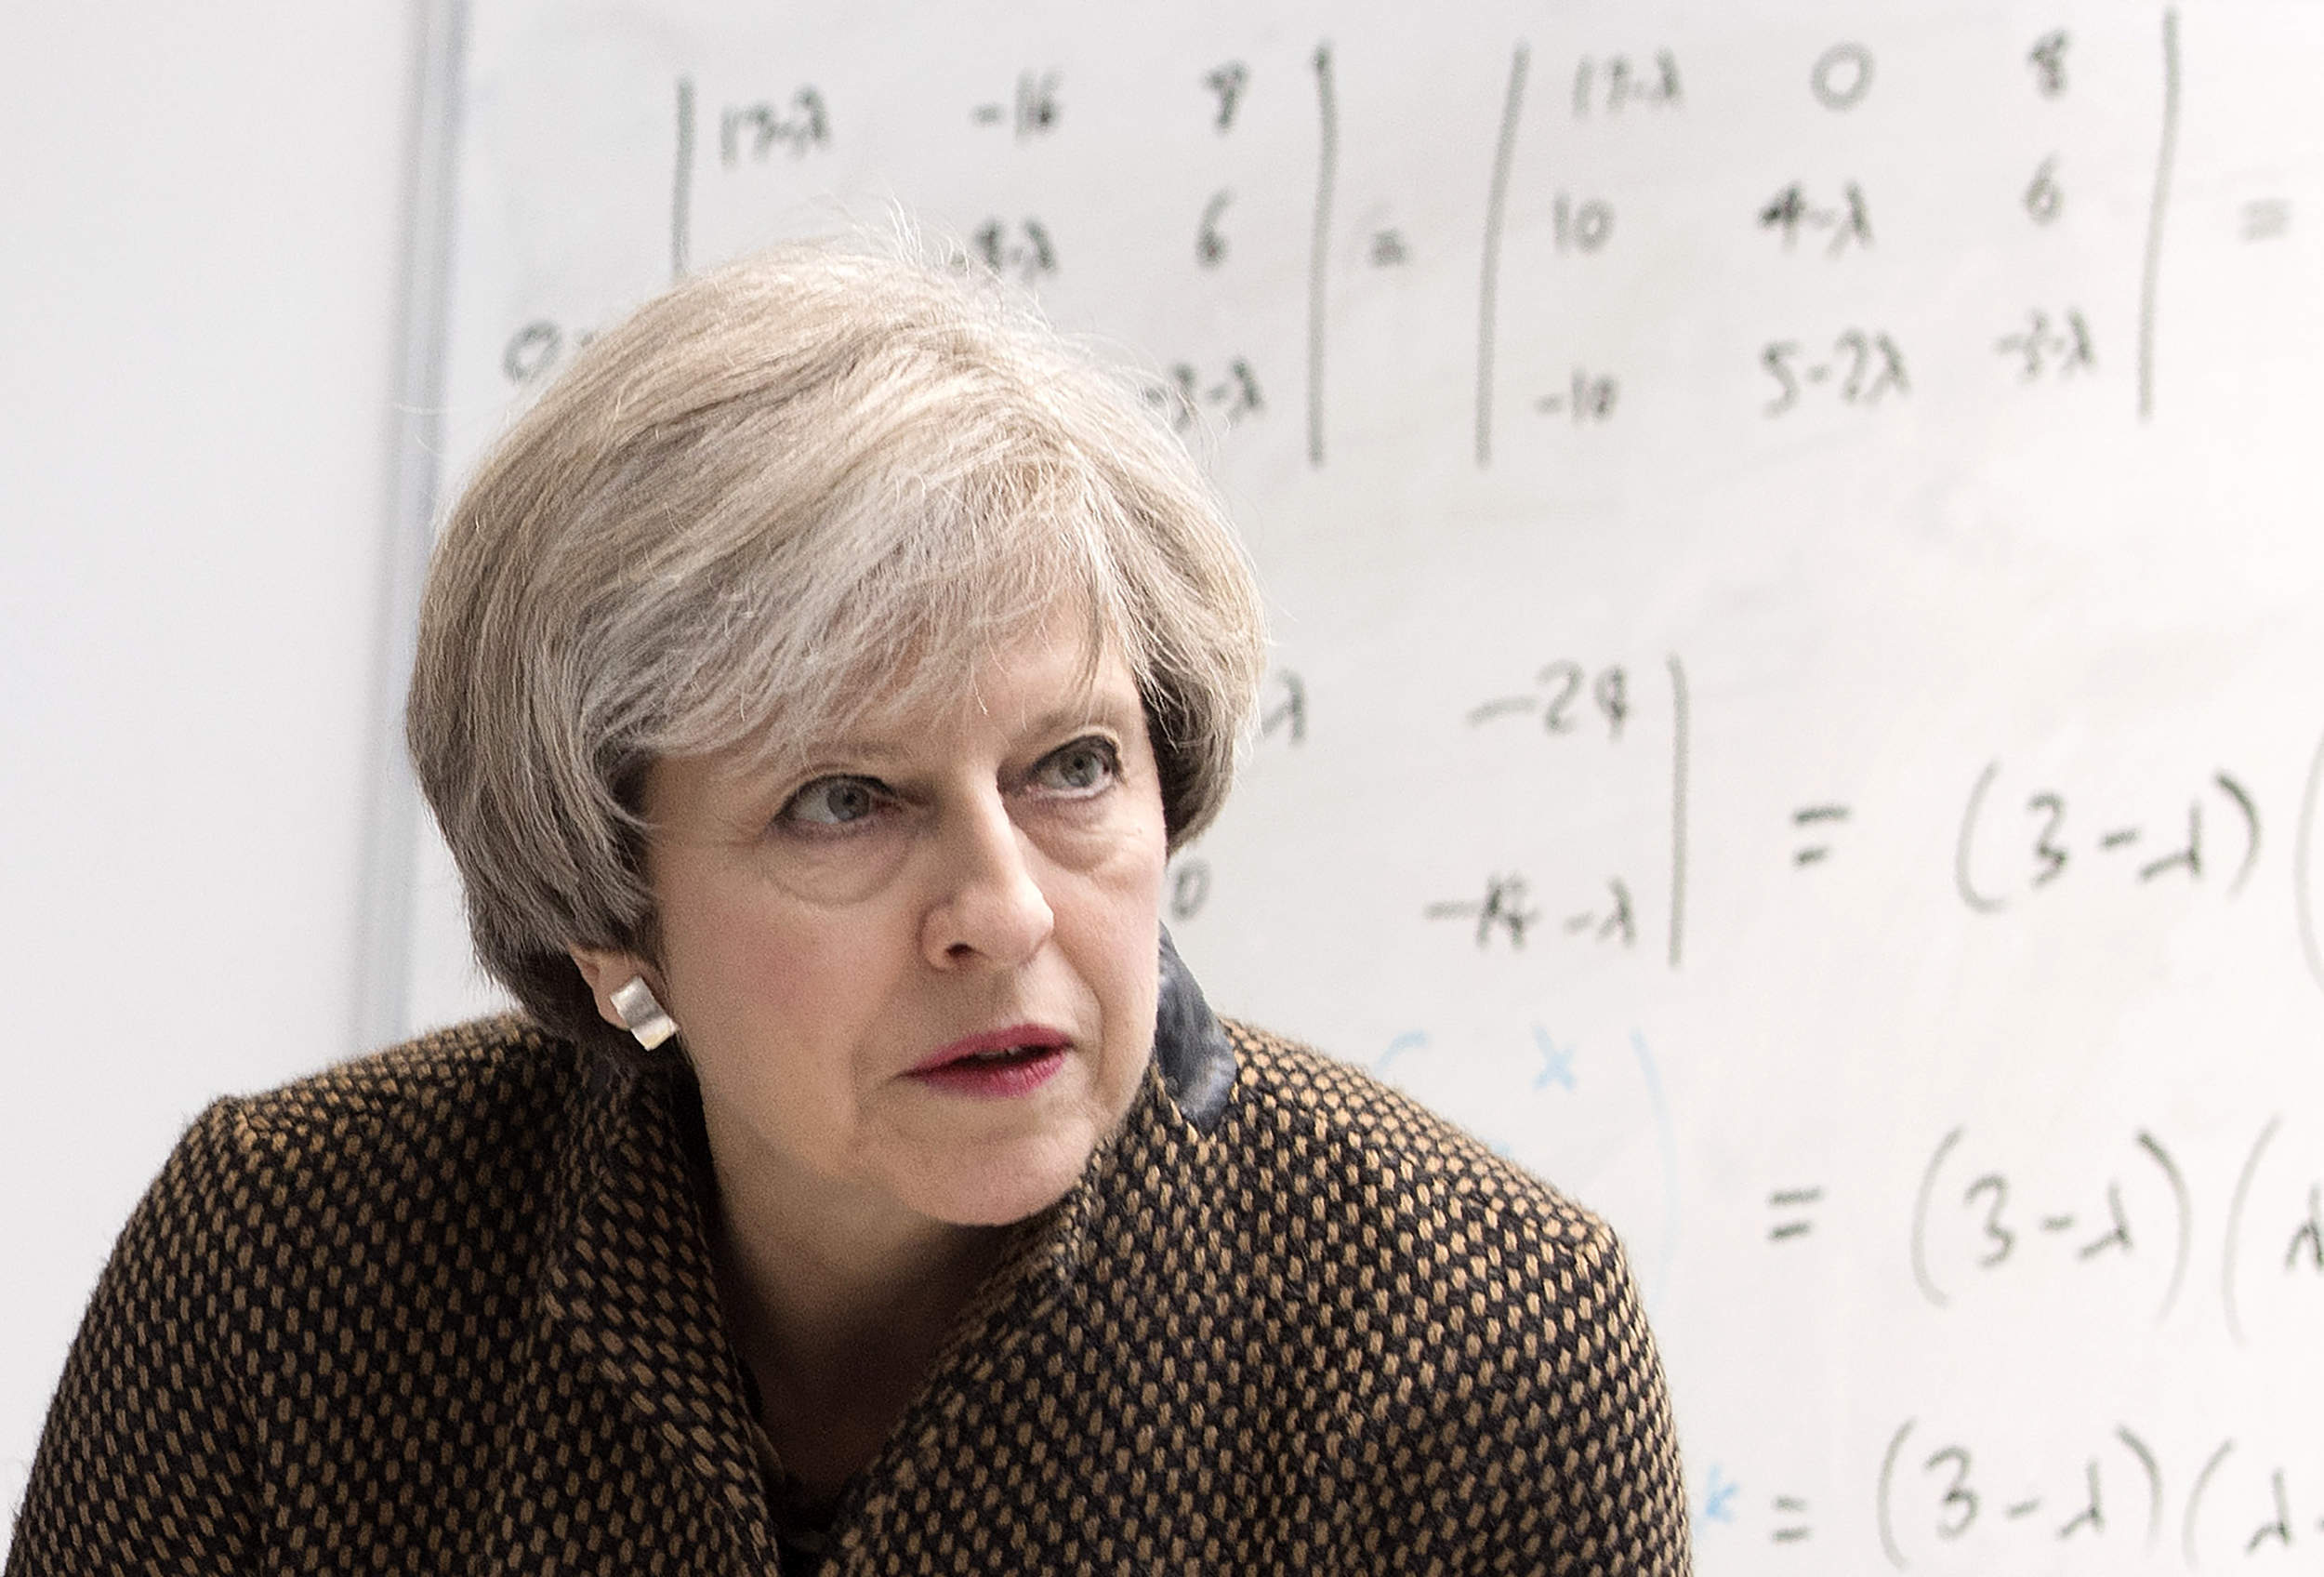 School funding: the £3bn problem creeping up on Theresa May